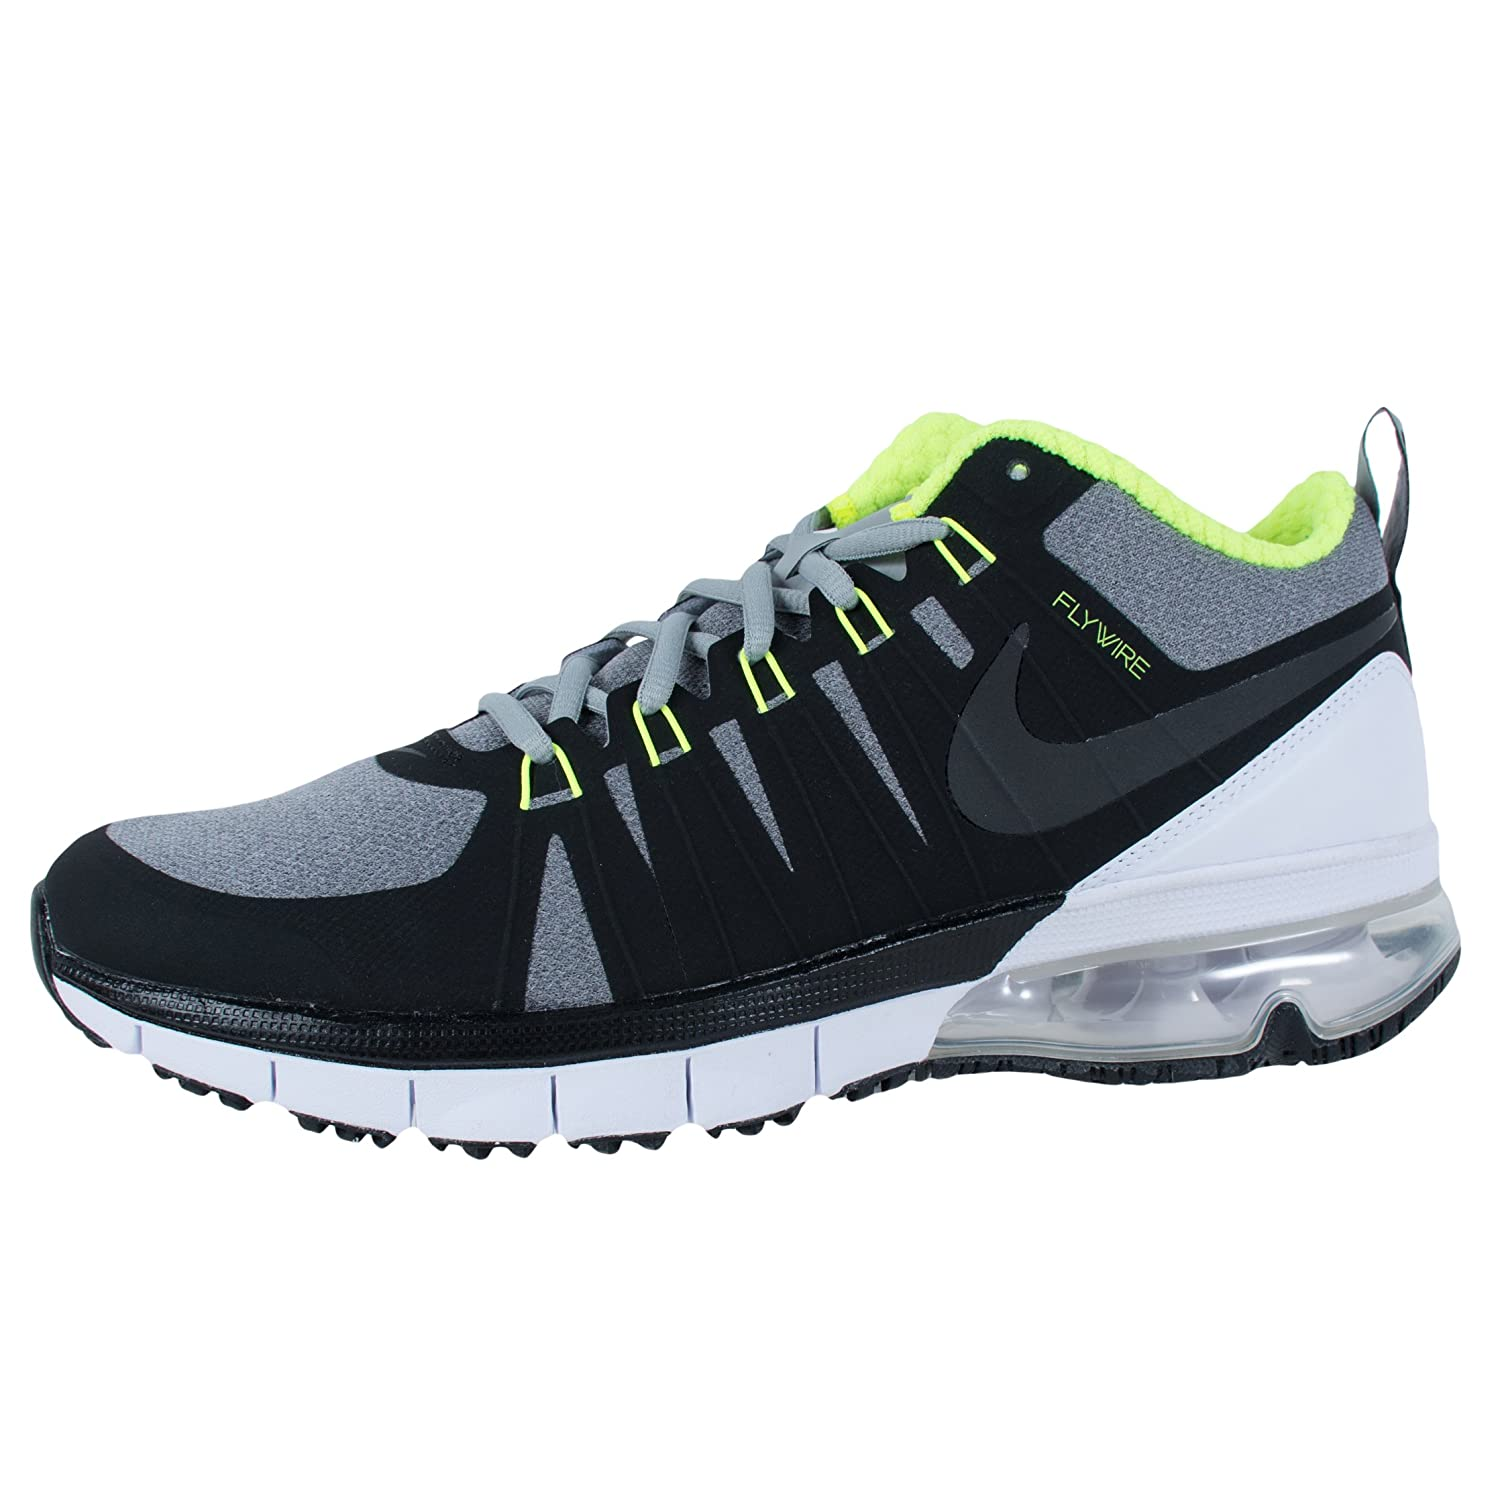 innovative design 75d68 1aa51 Amazon.com   NIKE Men s Air Max TR180 AMP Trainers   Fashion Sneakers